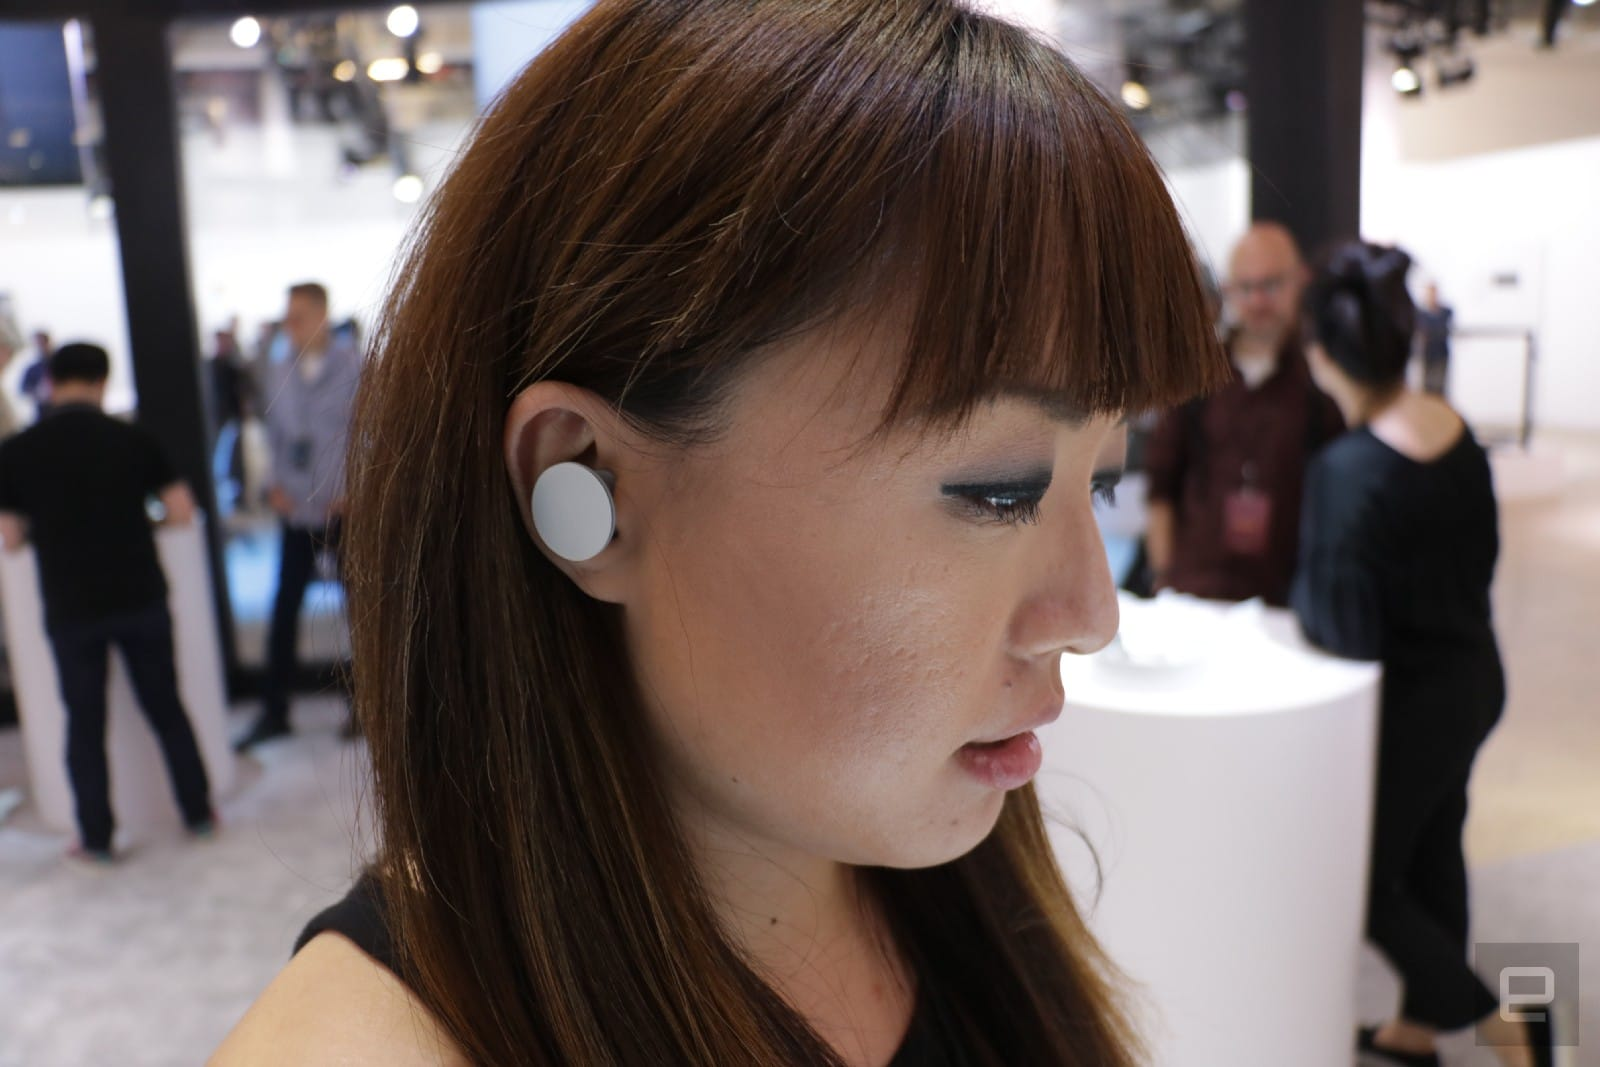 Surface Earbuds look weird, but they feel great